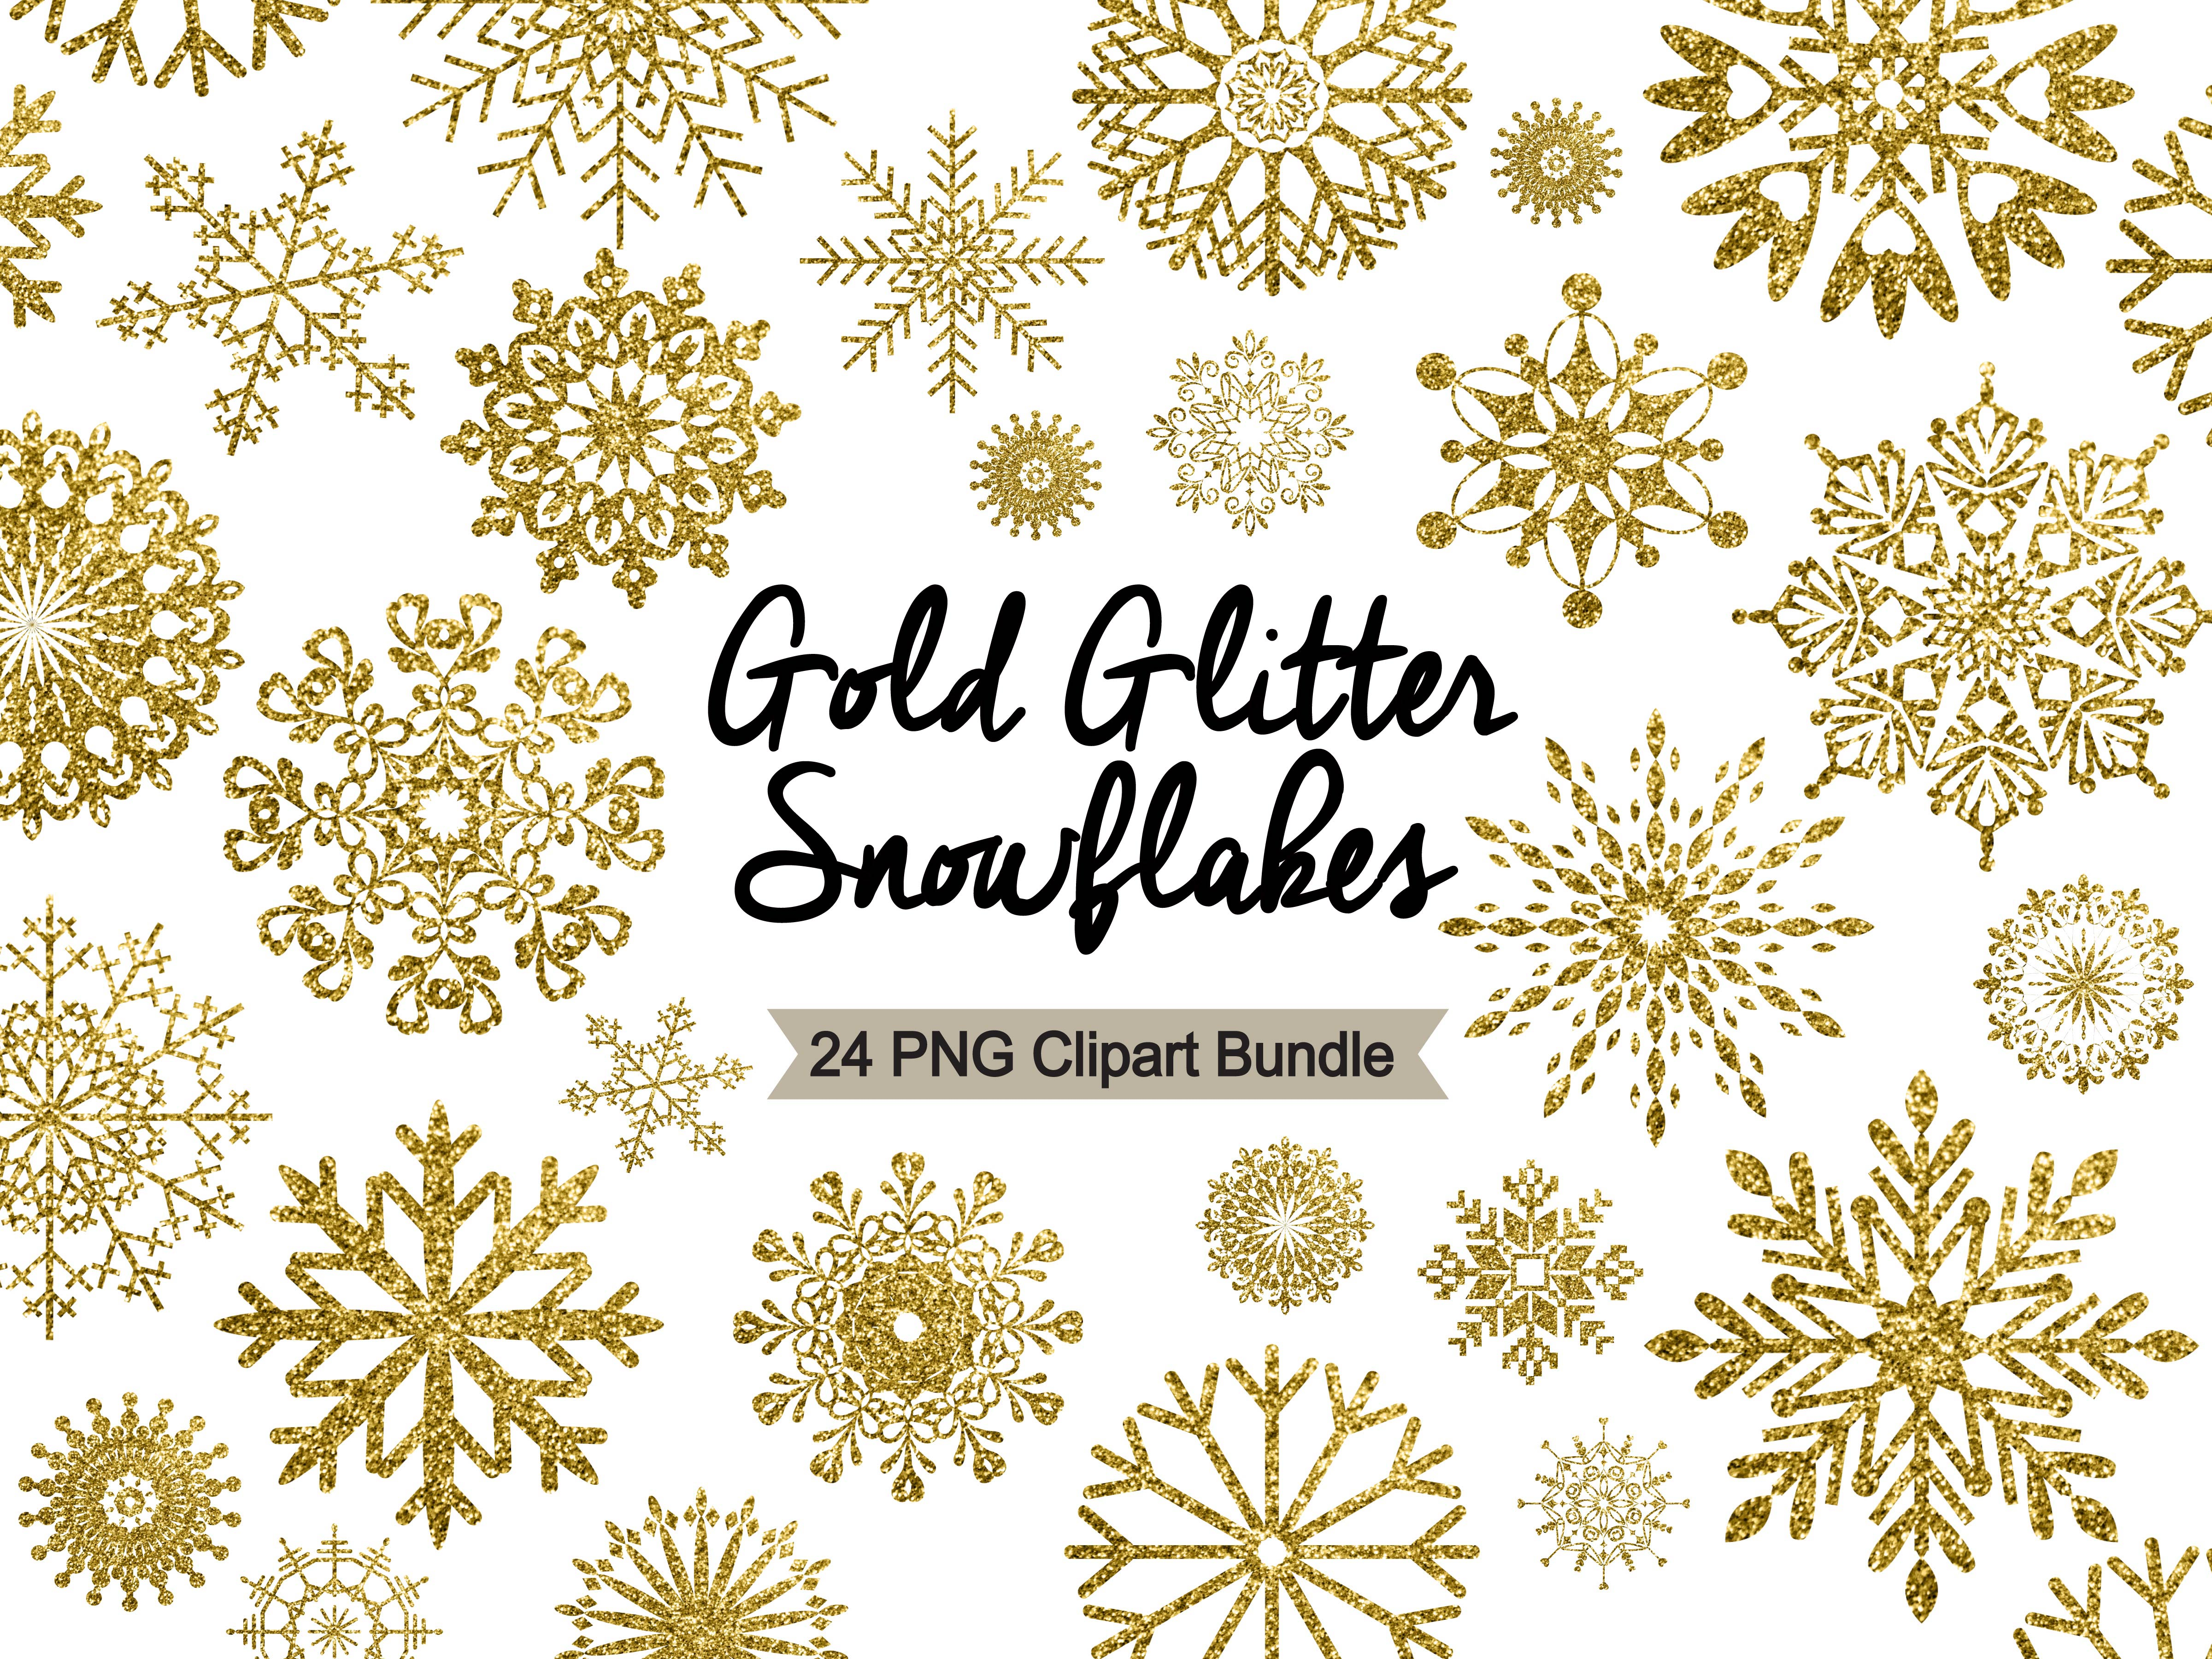 Gold glitter clipart image library Snowflake Clipart - Gold Glitter image library